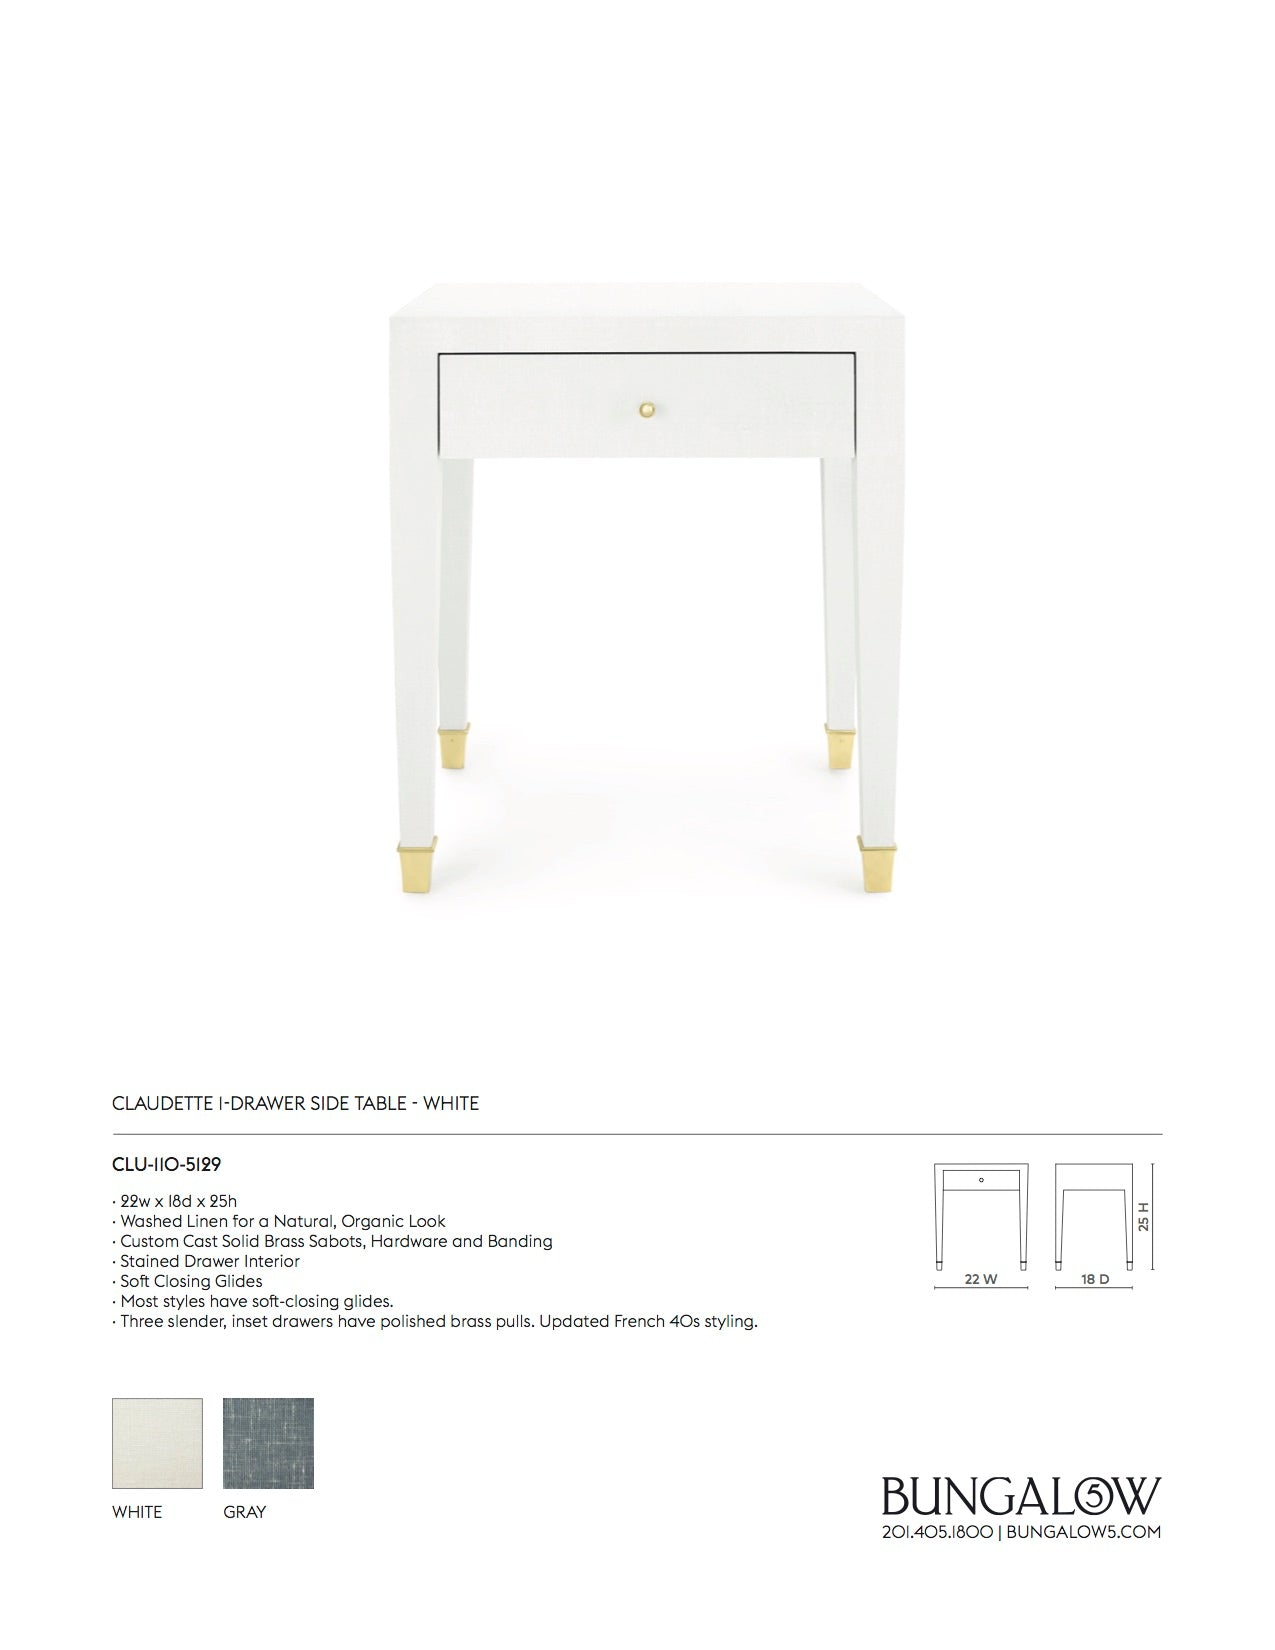 Bungalow 5 Claudette 1 Drawer Side Table White Tearsheet